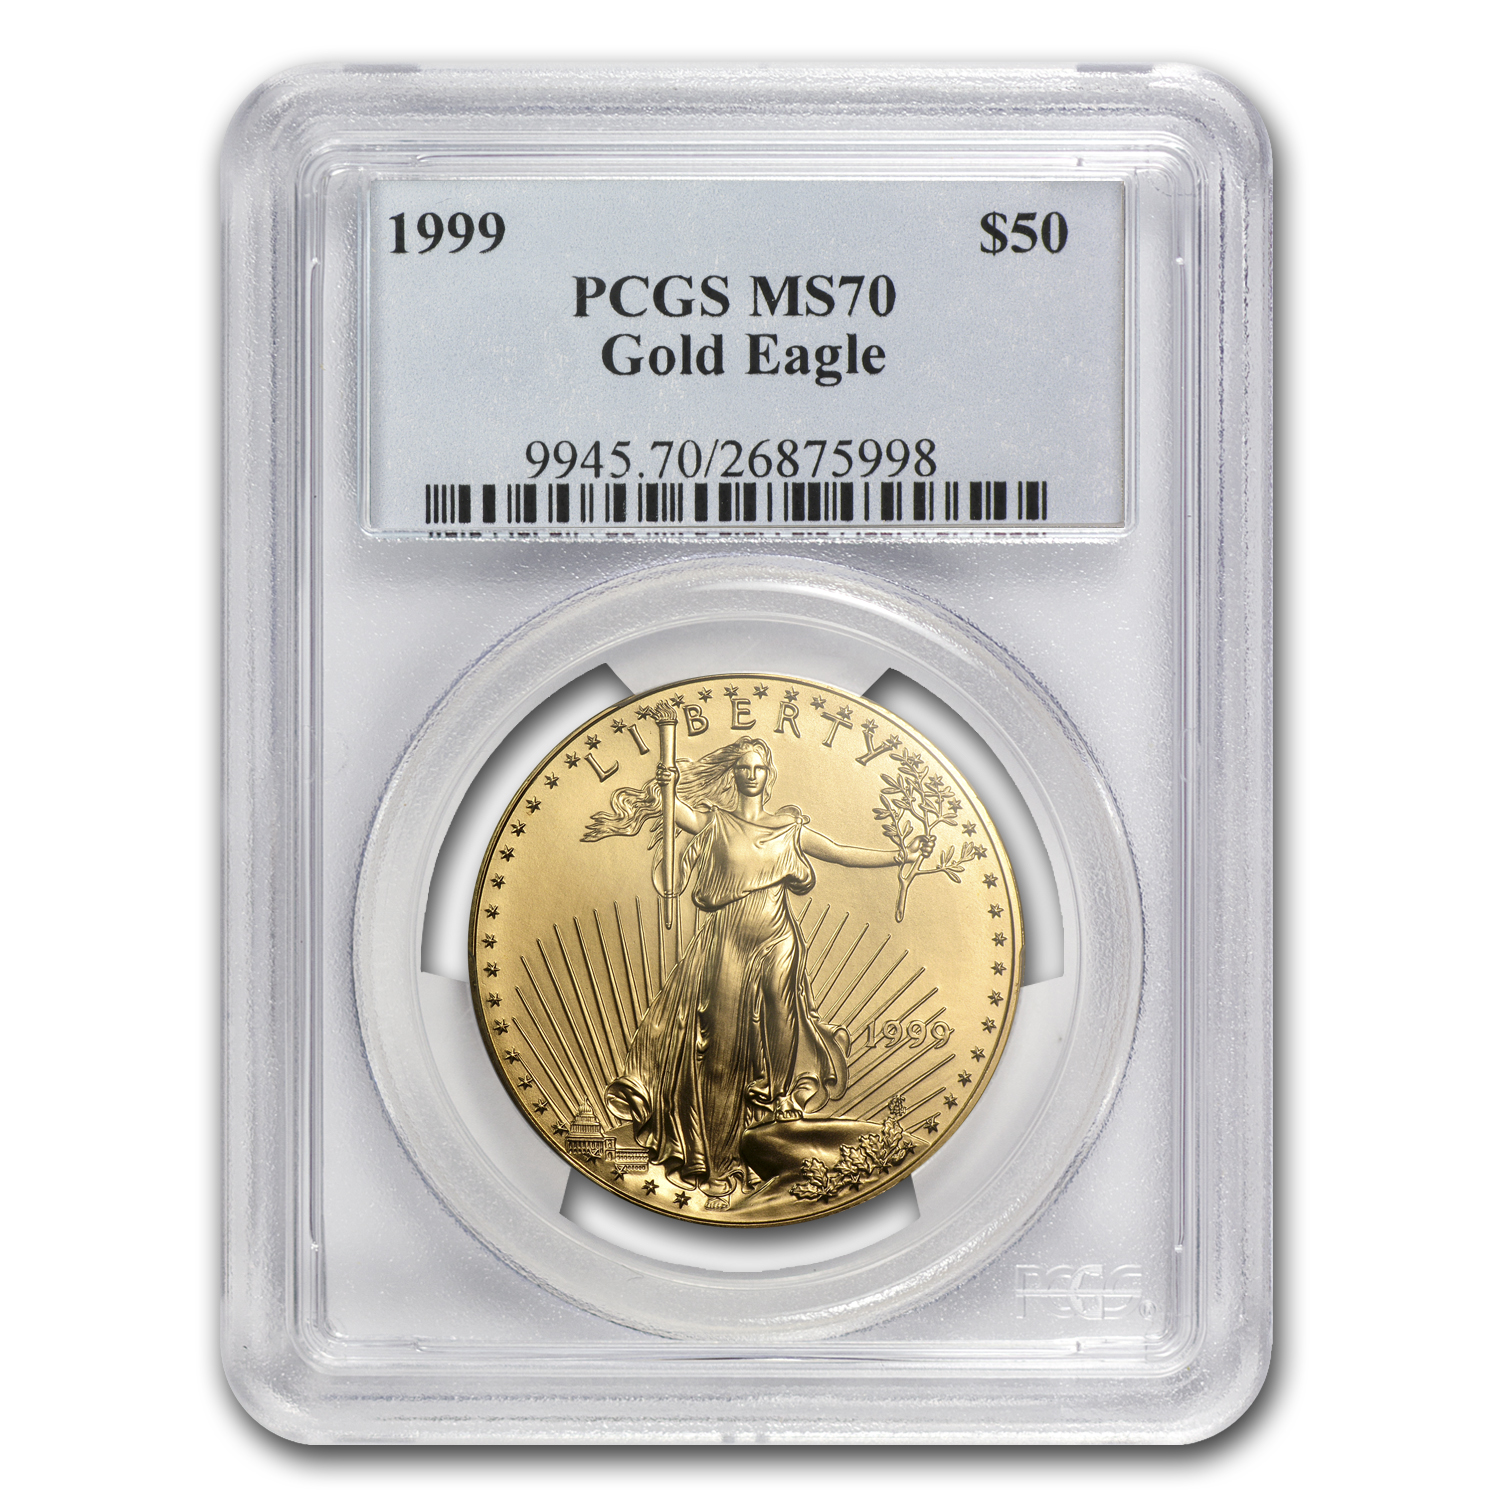 1999 1 oz Gold American Eagle MS-70 PCGS (Registry Coin)